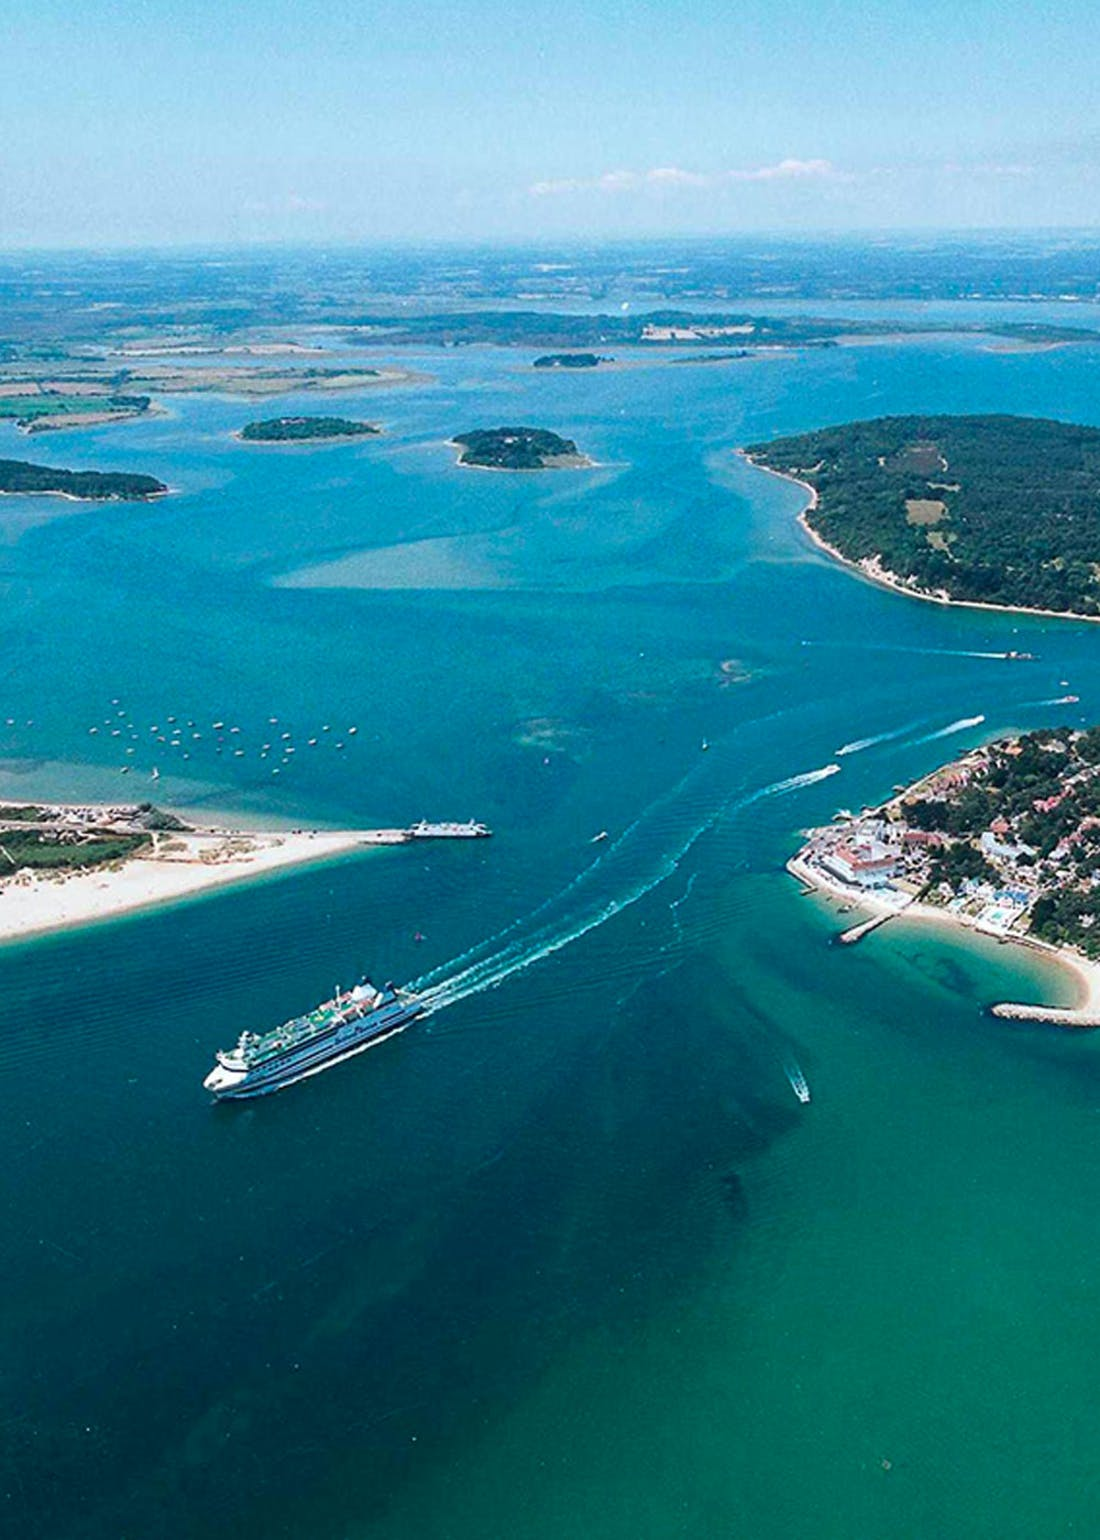 Virgin Experience Days Poole Harbour Island Cruise for 2